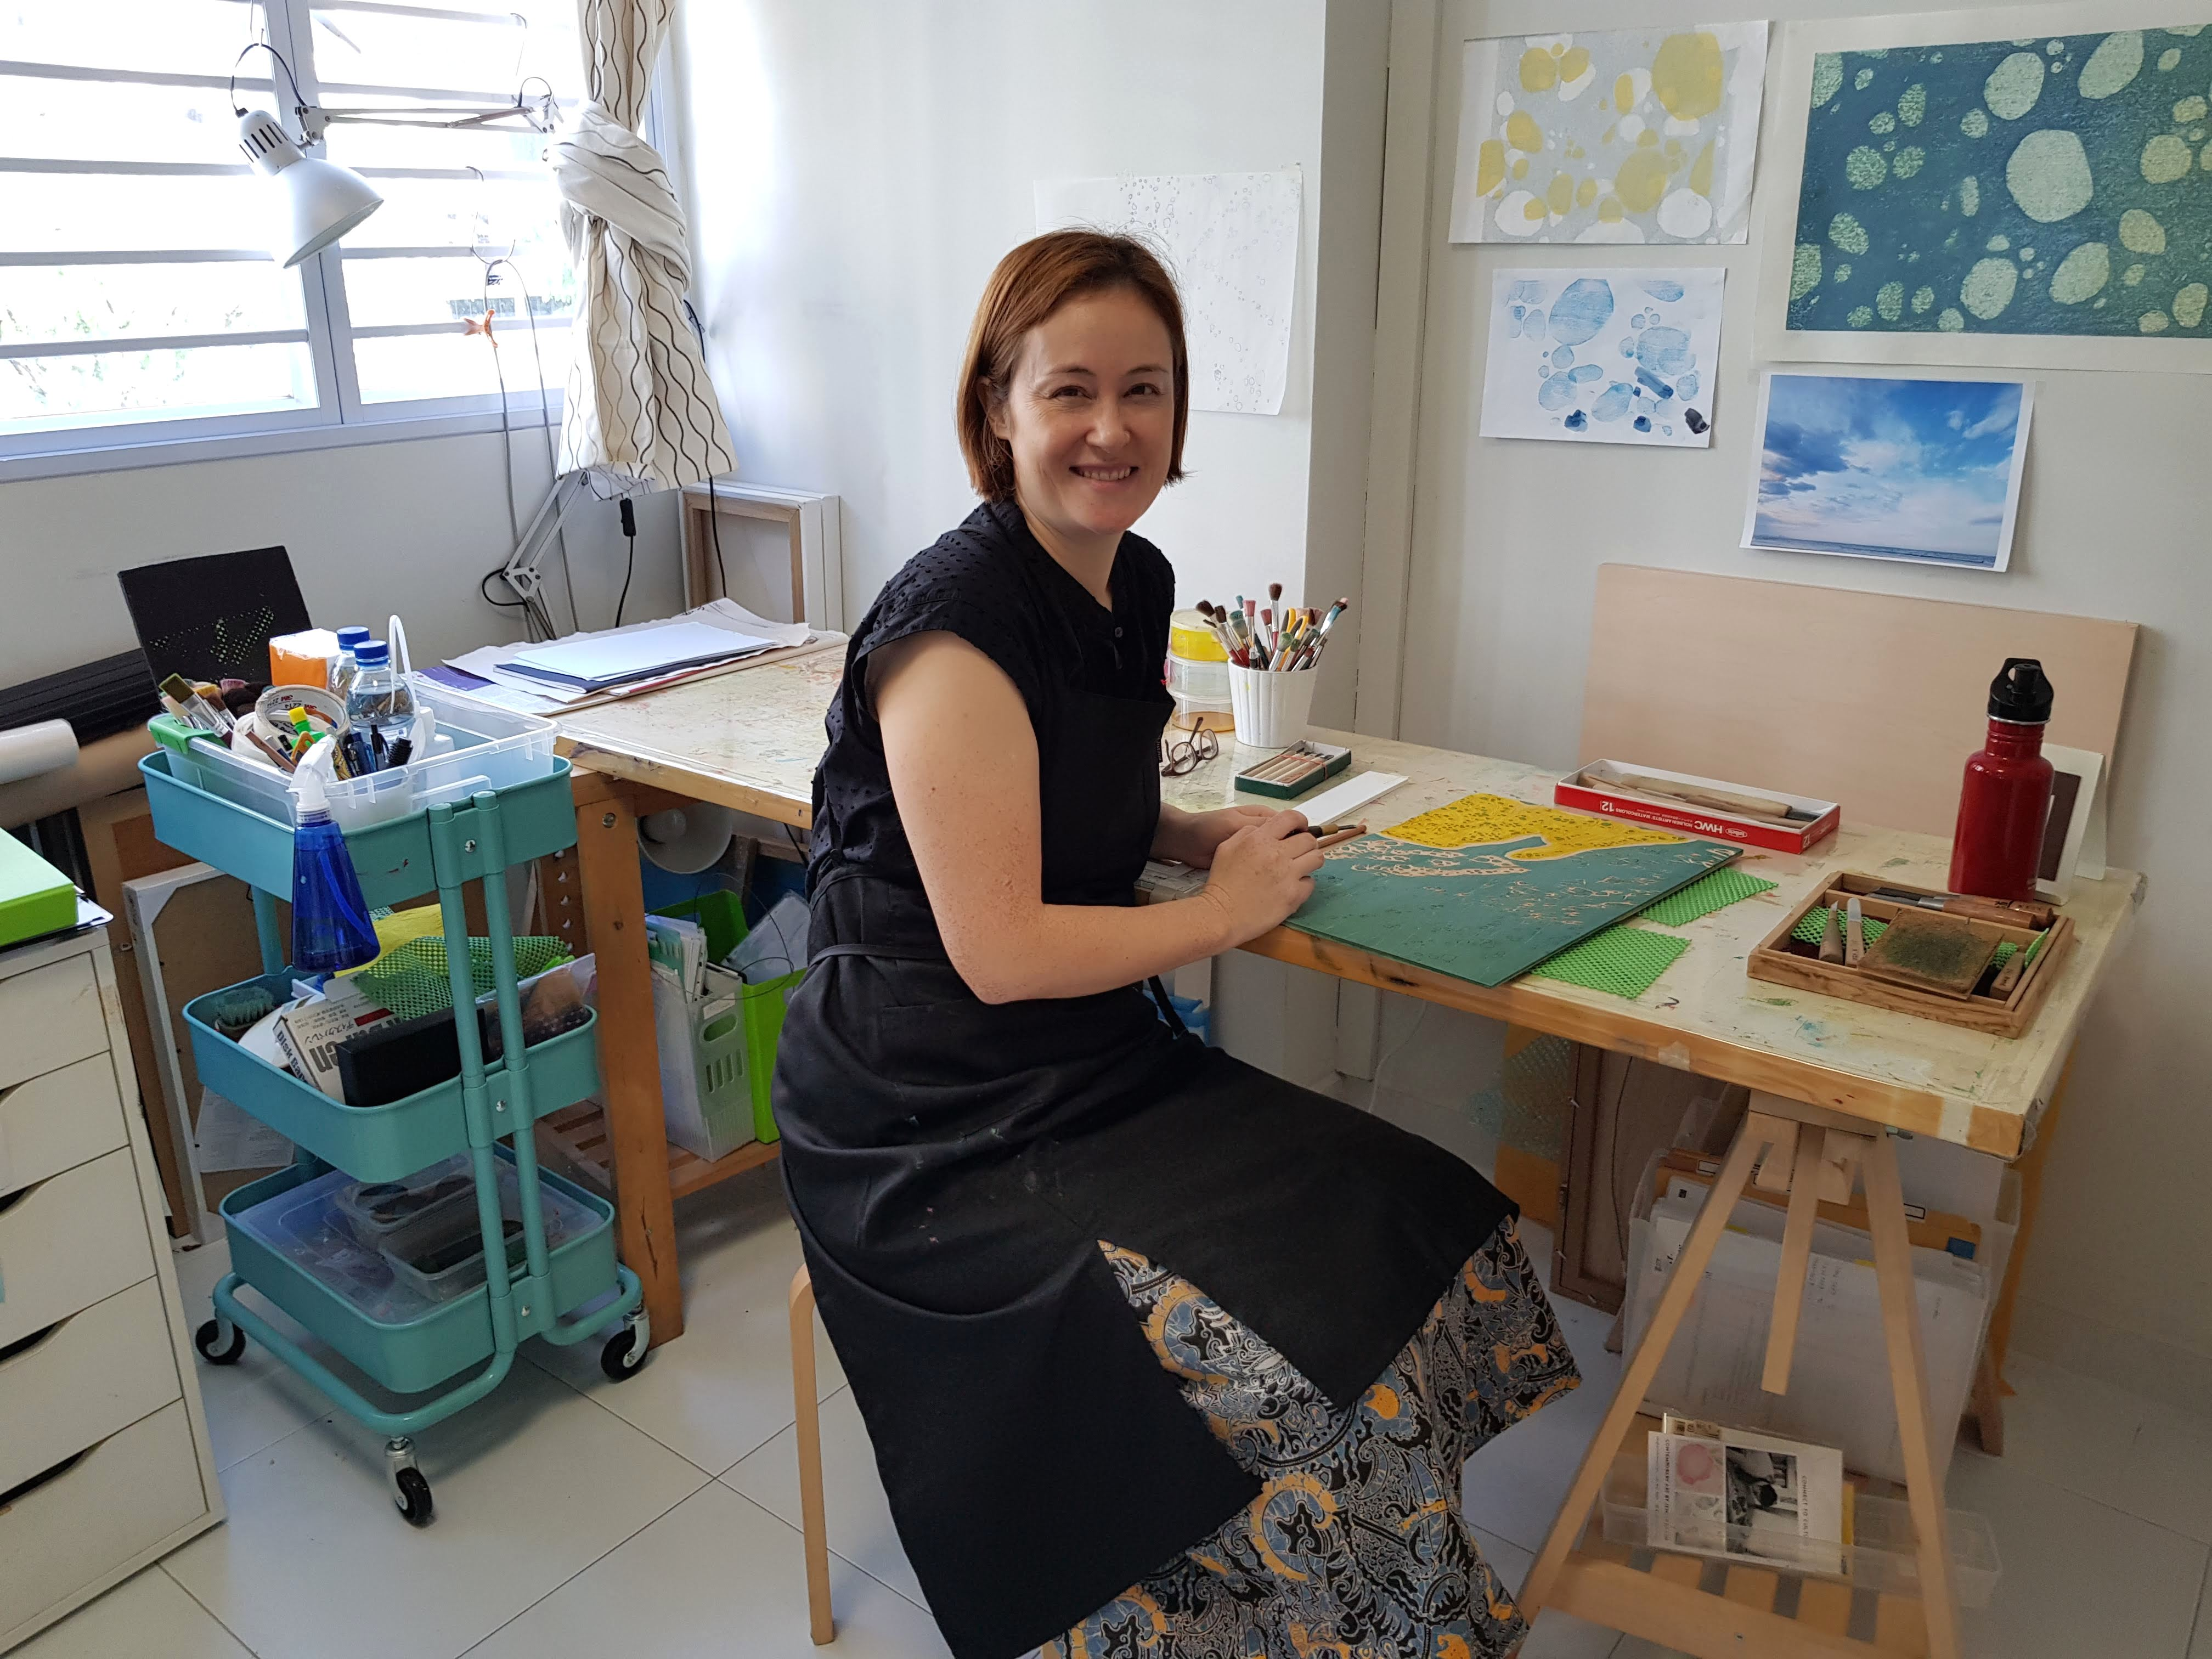 Artist Jennifer Lim in Singapore with Japanese woodblock